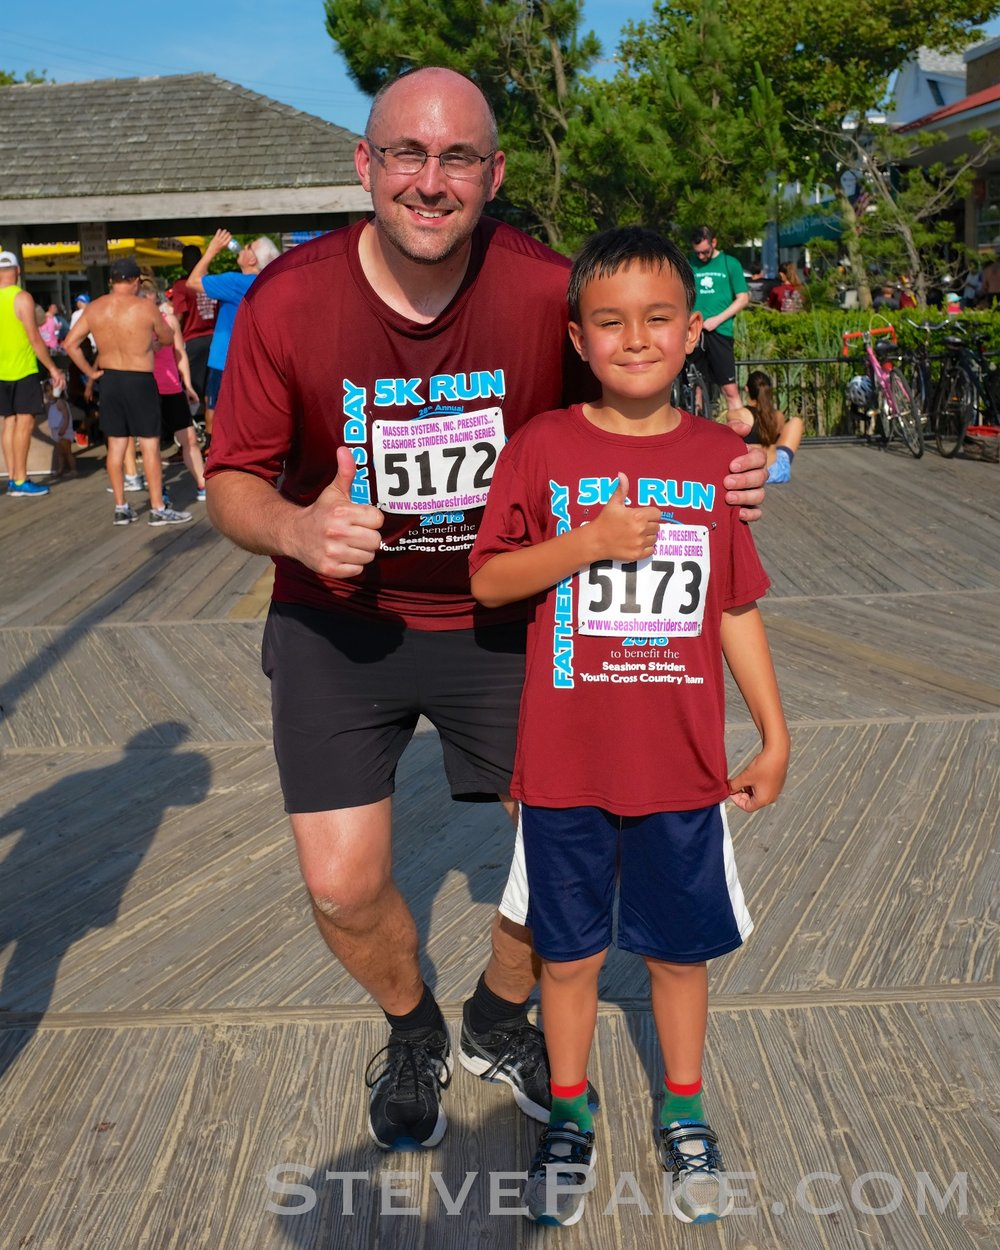 Our first Father-Son Father's Day 5K at Rehoboth Beach, DE will be a new tradition for us. We both did 31 minutes, but William kicked in his afterburners at the end when I was huffing and puffing and beat me by just under 20 seconds!